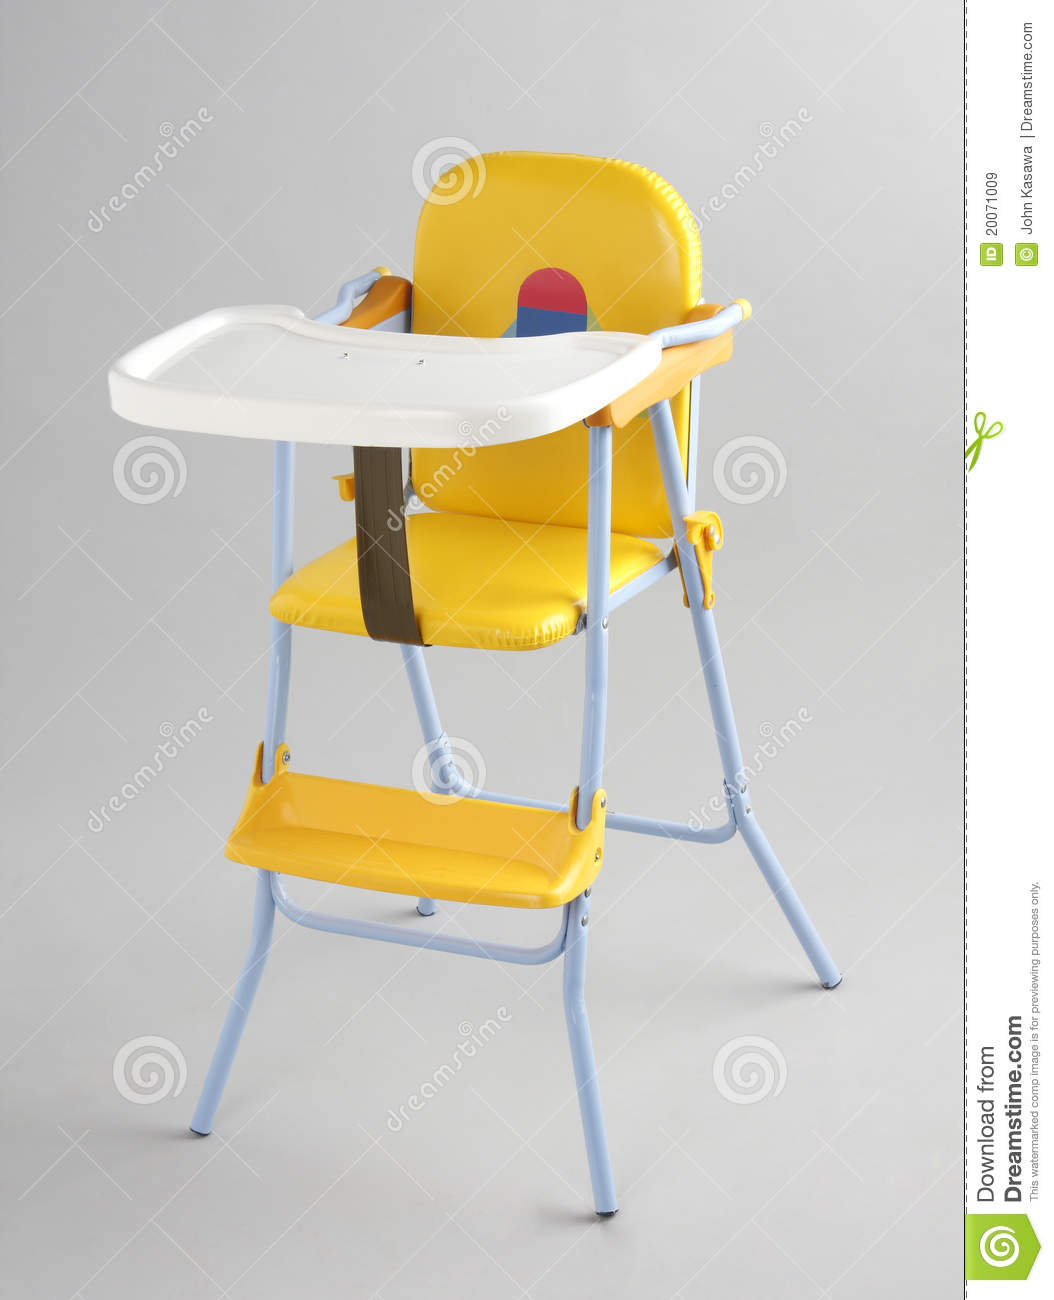 Baby Eating Food Chair Isolated Royalty Free Stock Images